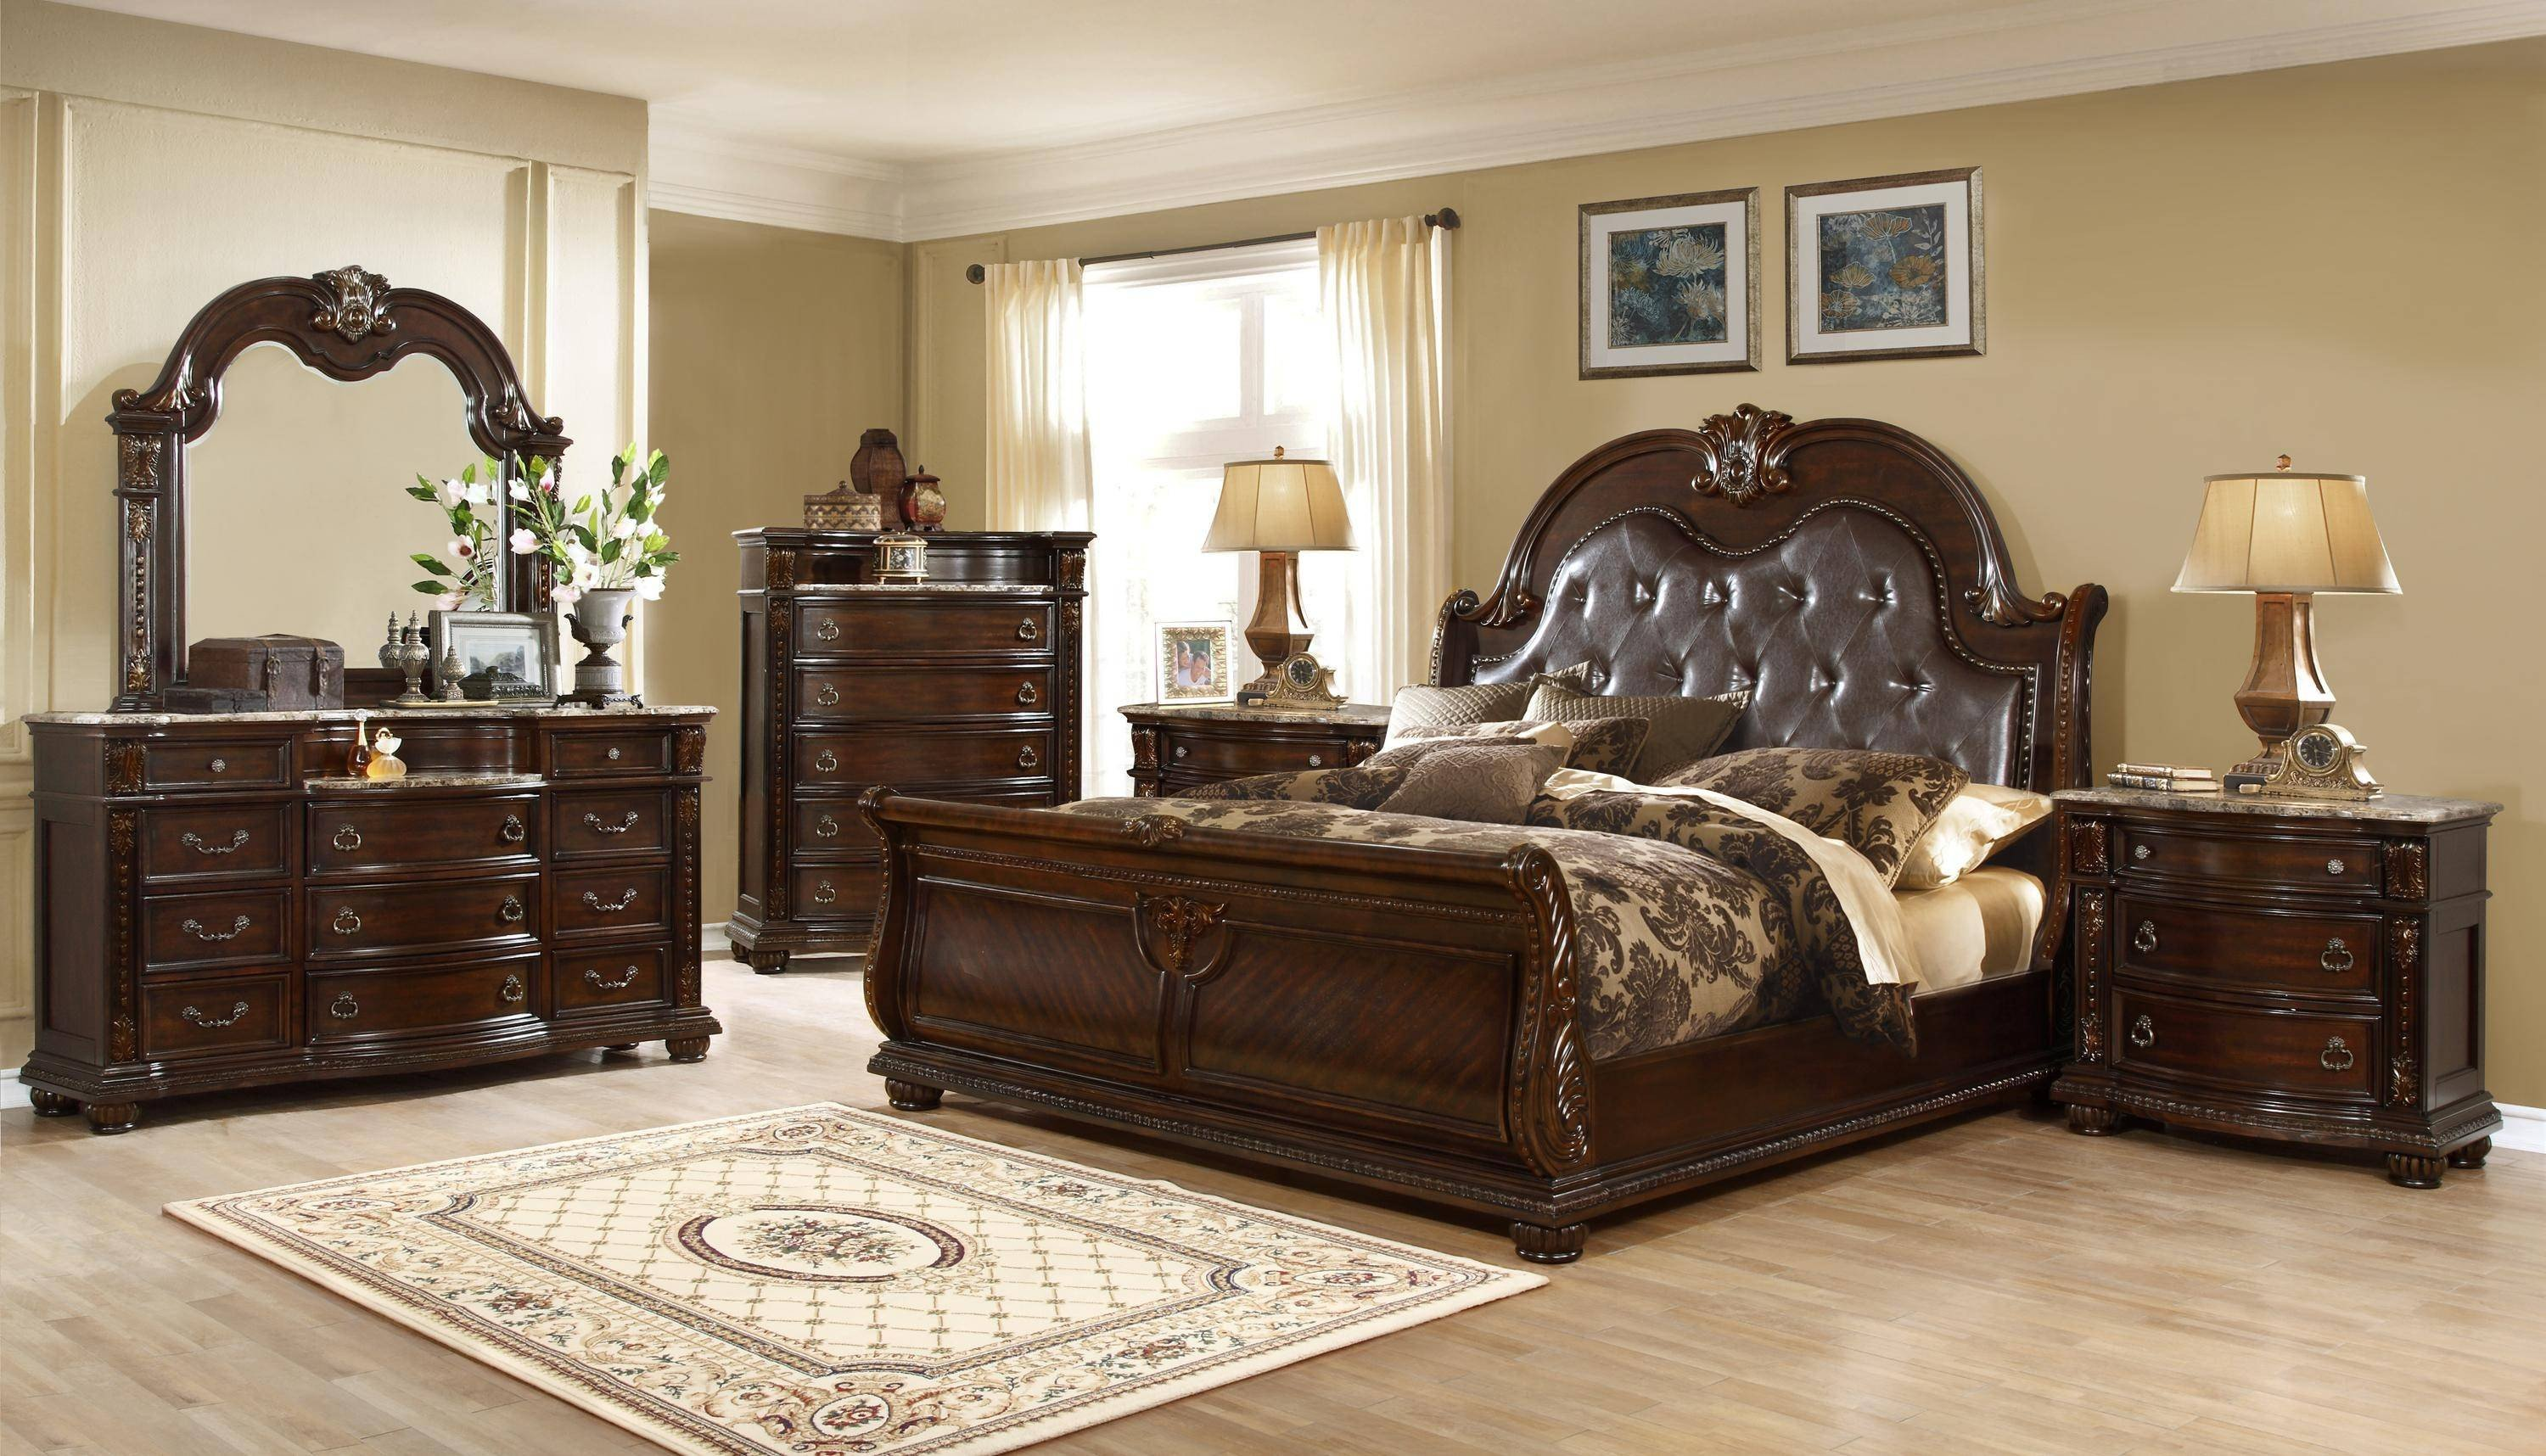 Tufted Queen Bedroom Set Fresh Mcferran B9500 Q Amber Dark Cherry Finish Luxury Tufted